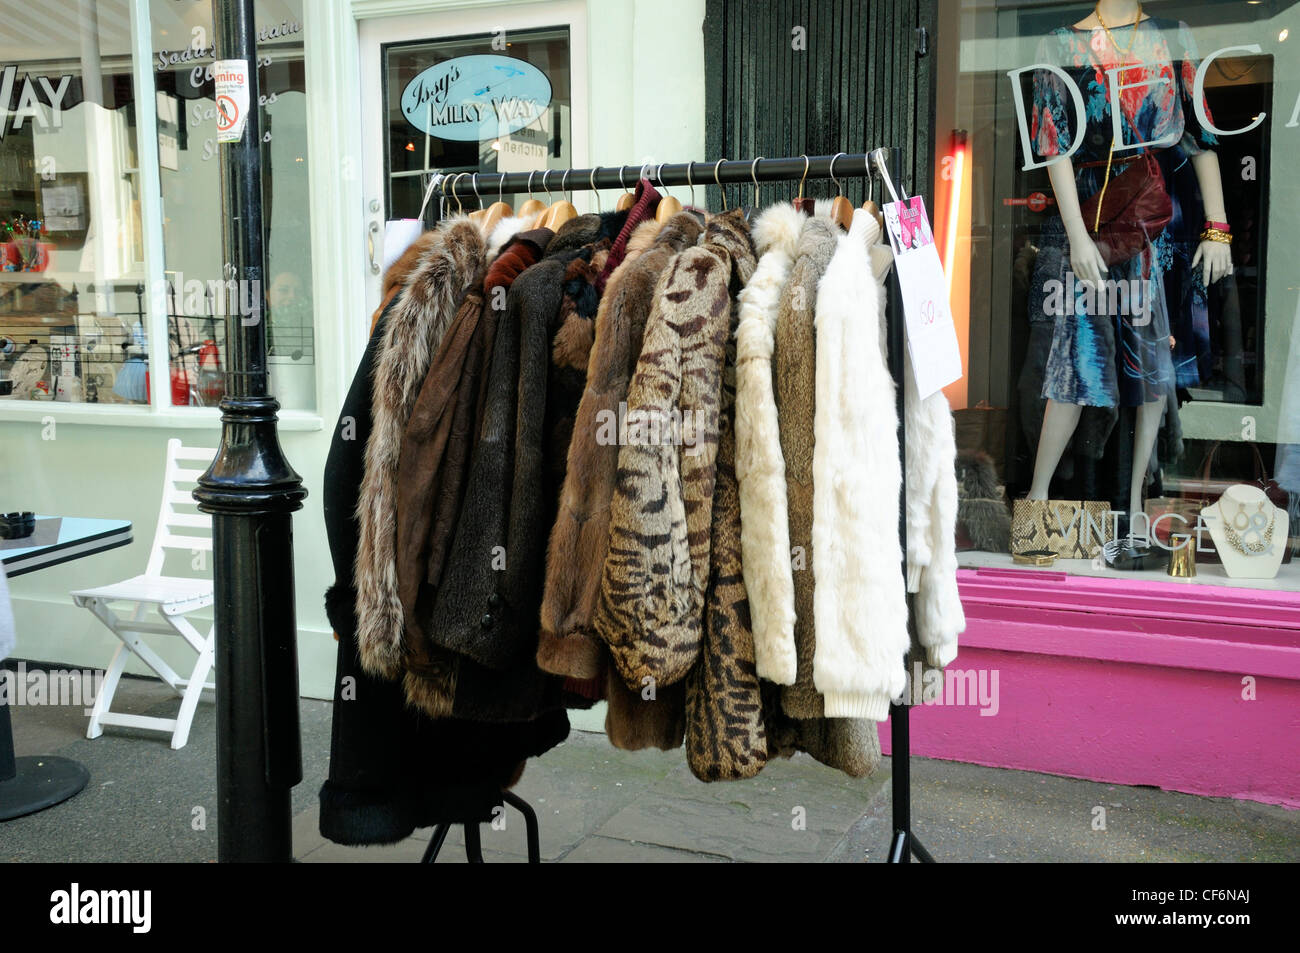 Vintage Fur Coats For Sale On Clothes Rack Outside Shop In Camden